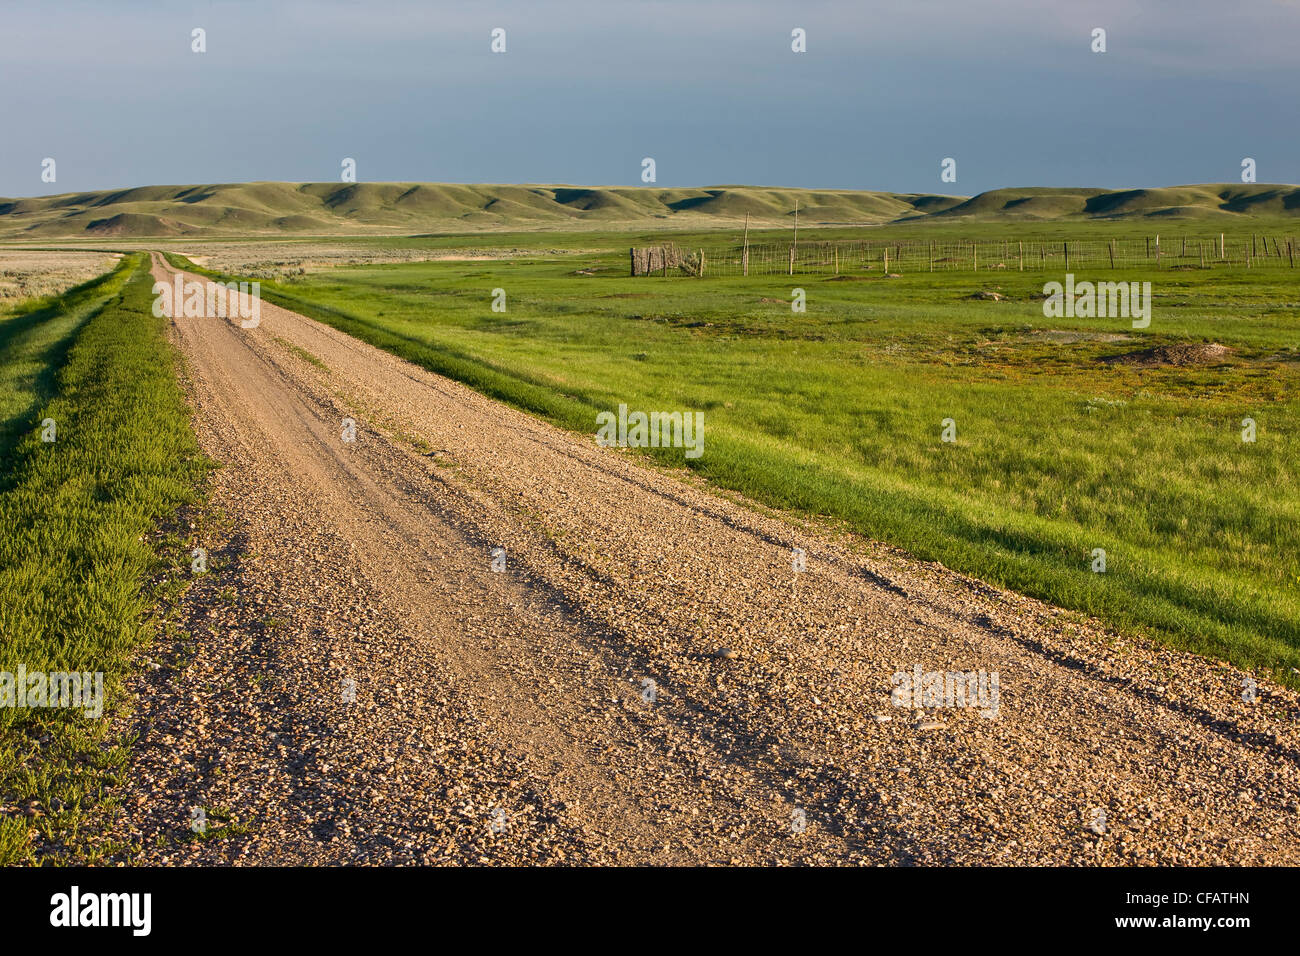 Frenchman River Valley Ecotour Route through the West Block of Grasslands National Park, Saskatchewan, Canada - Stock Image